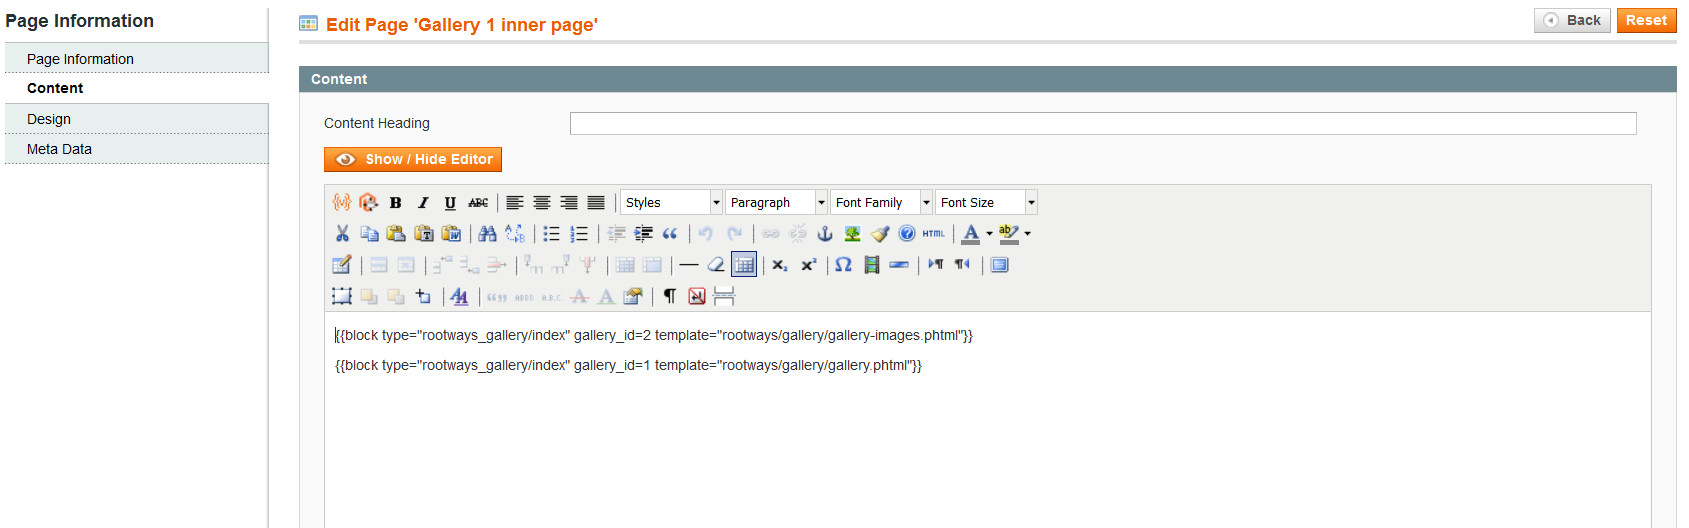 Add gallery in CMS page image